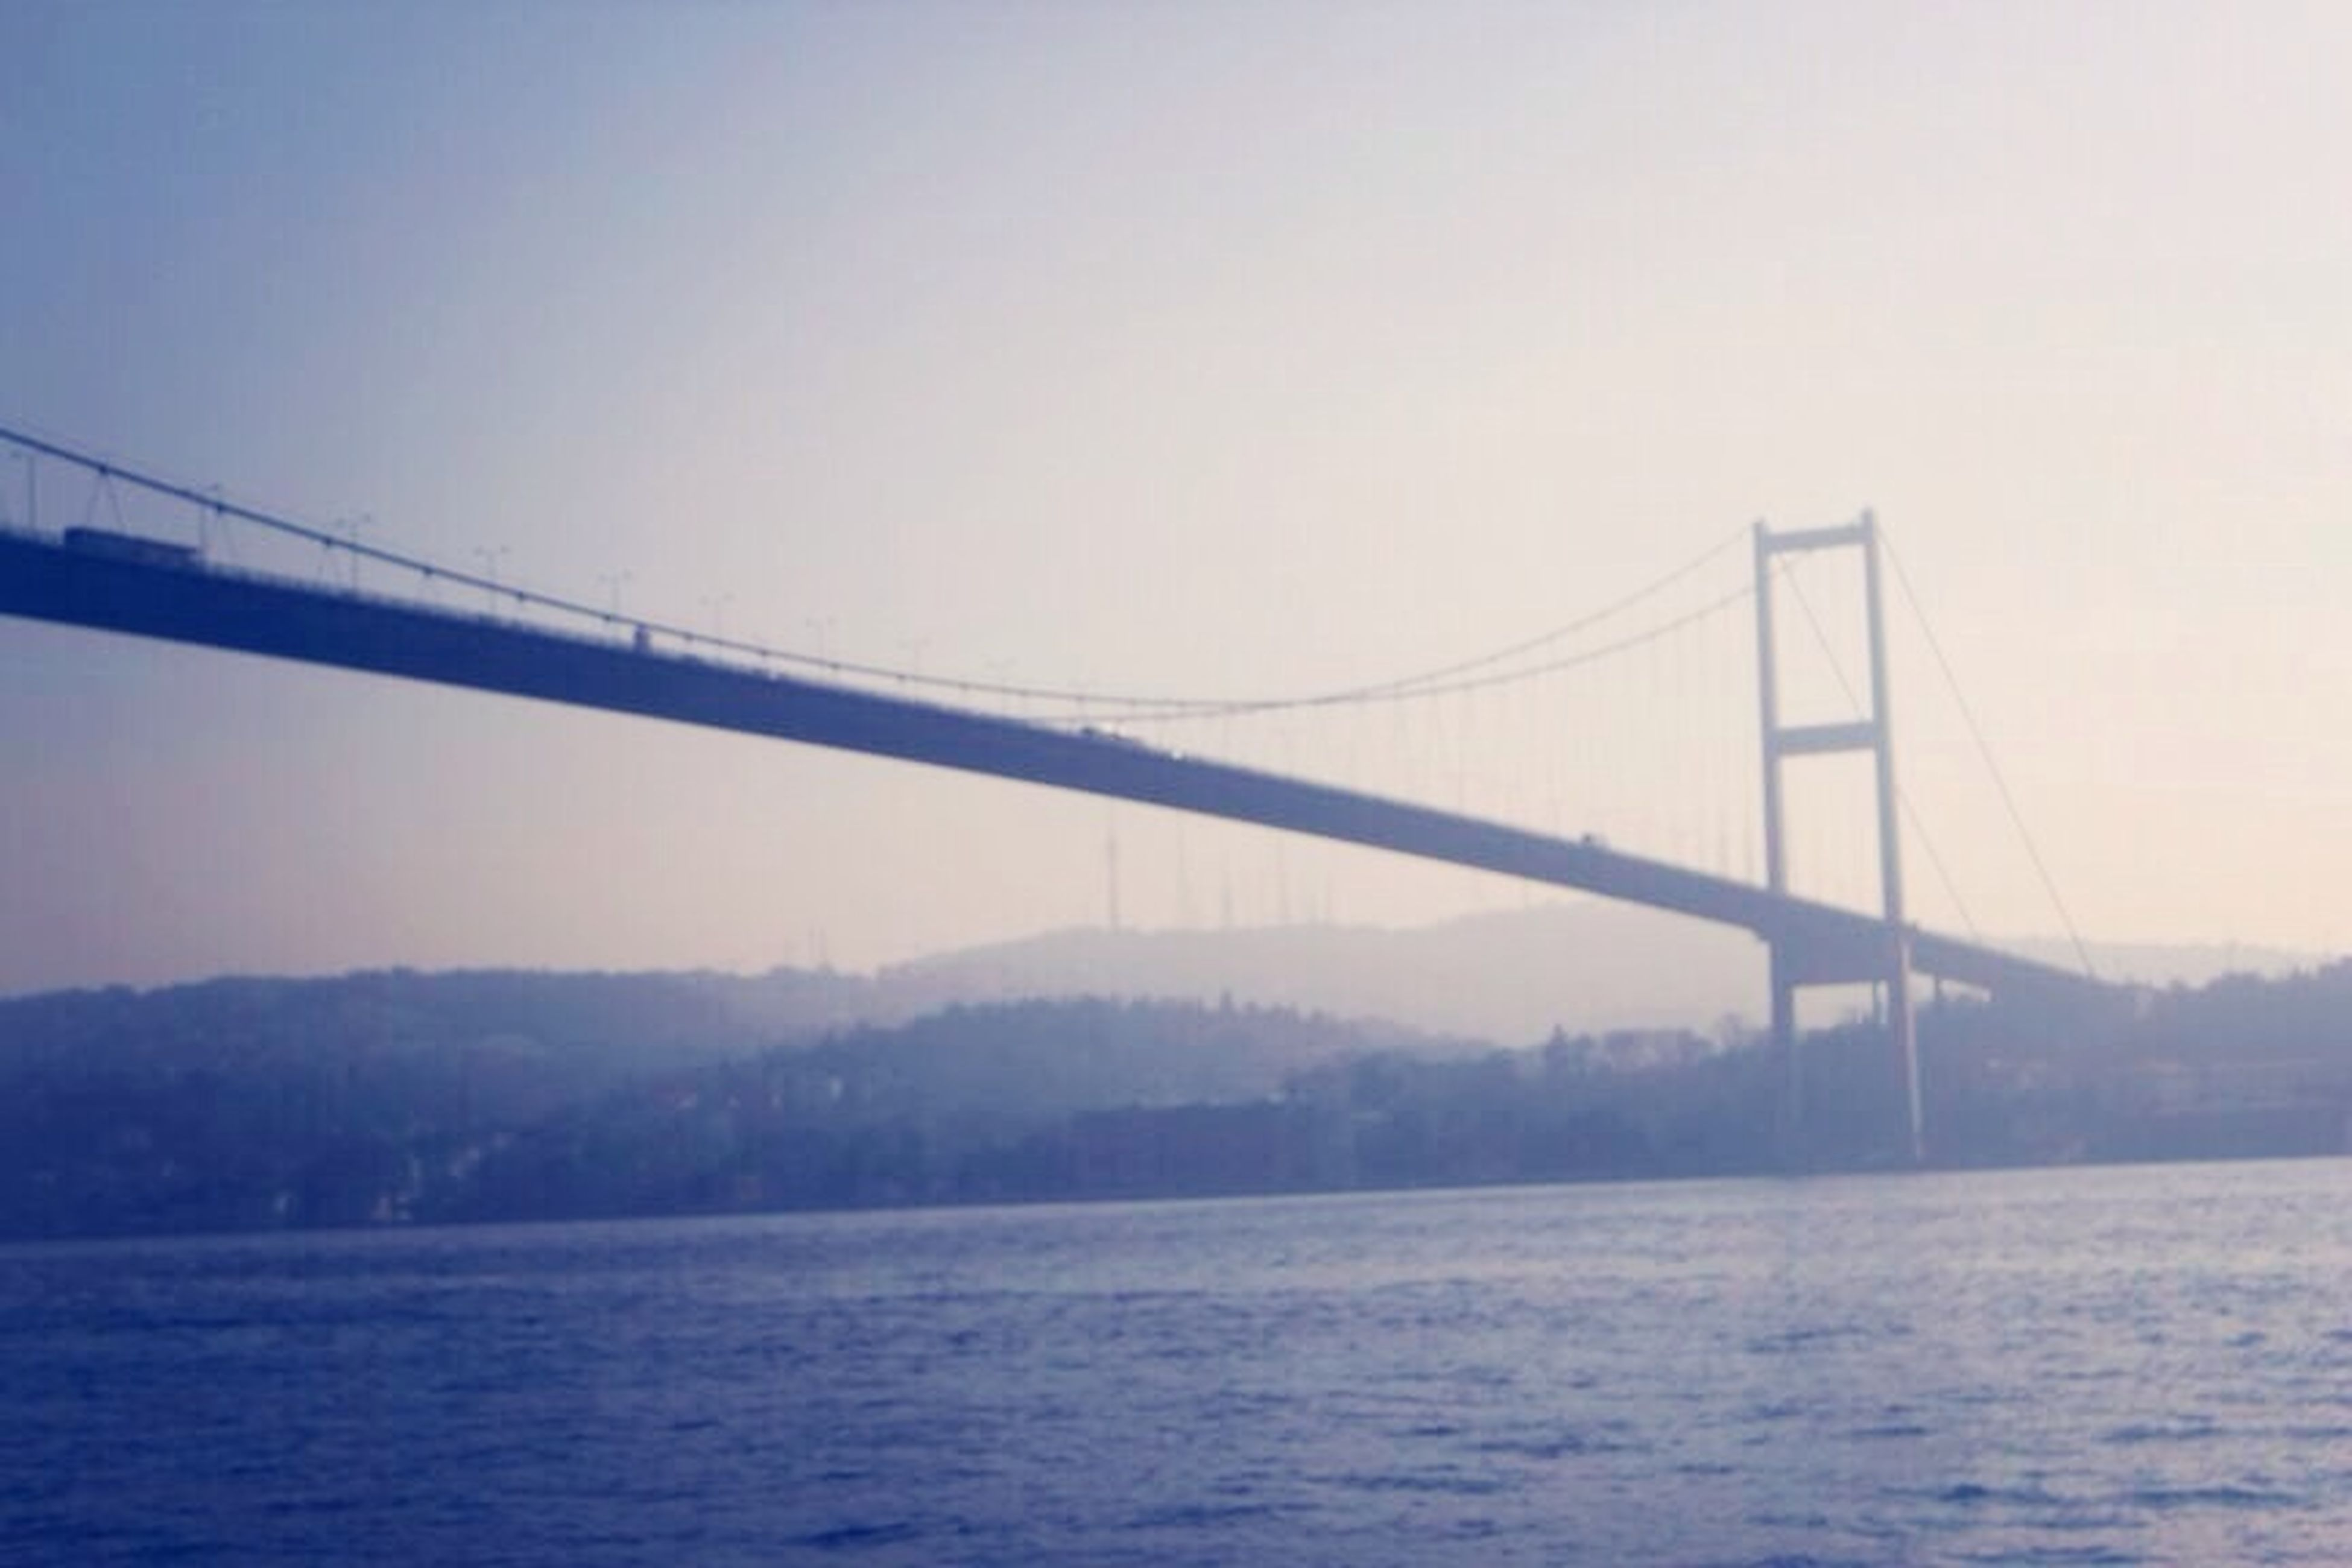 connection, bridge - man made structure, water, clear sky, waterfront, suspension bridge, built structure, engineering, copy space, river, bridge, architecture, transportation, sea, tranquility, nature, tranquil scene, sky, no people, outdoors